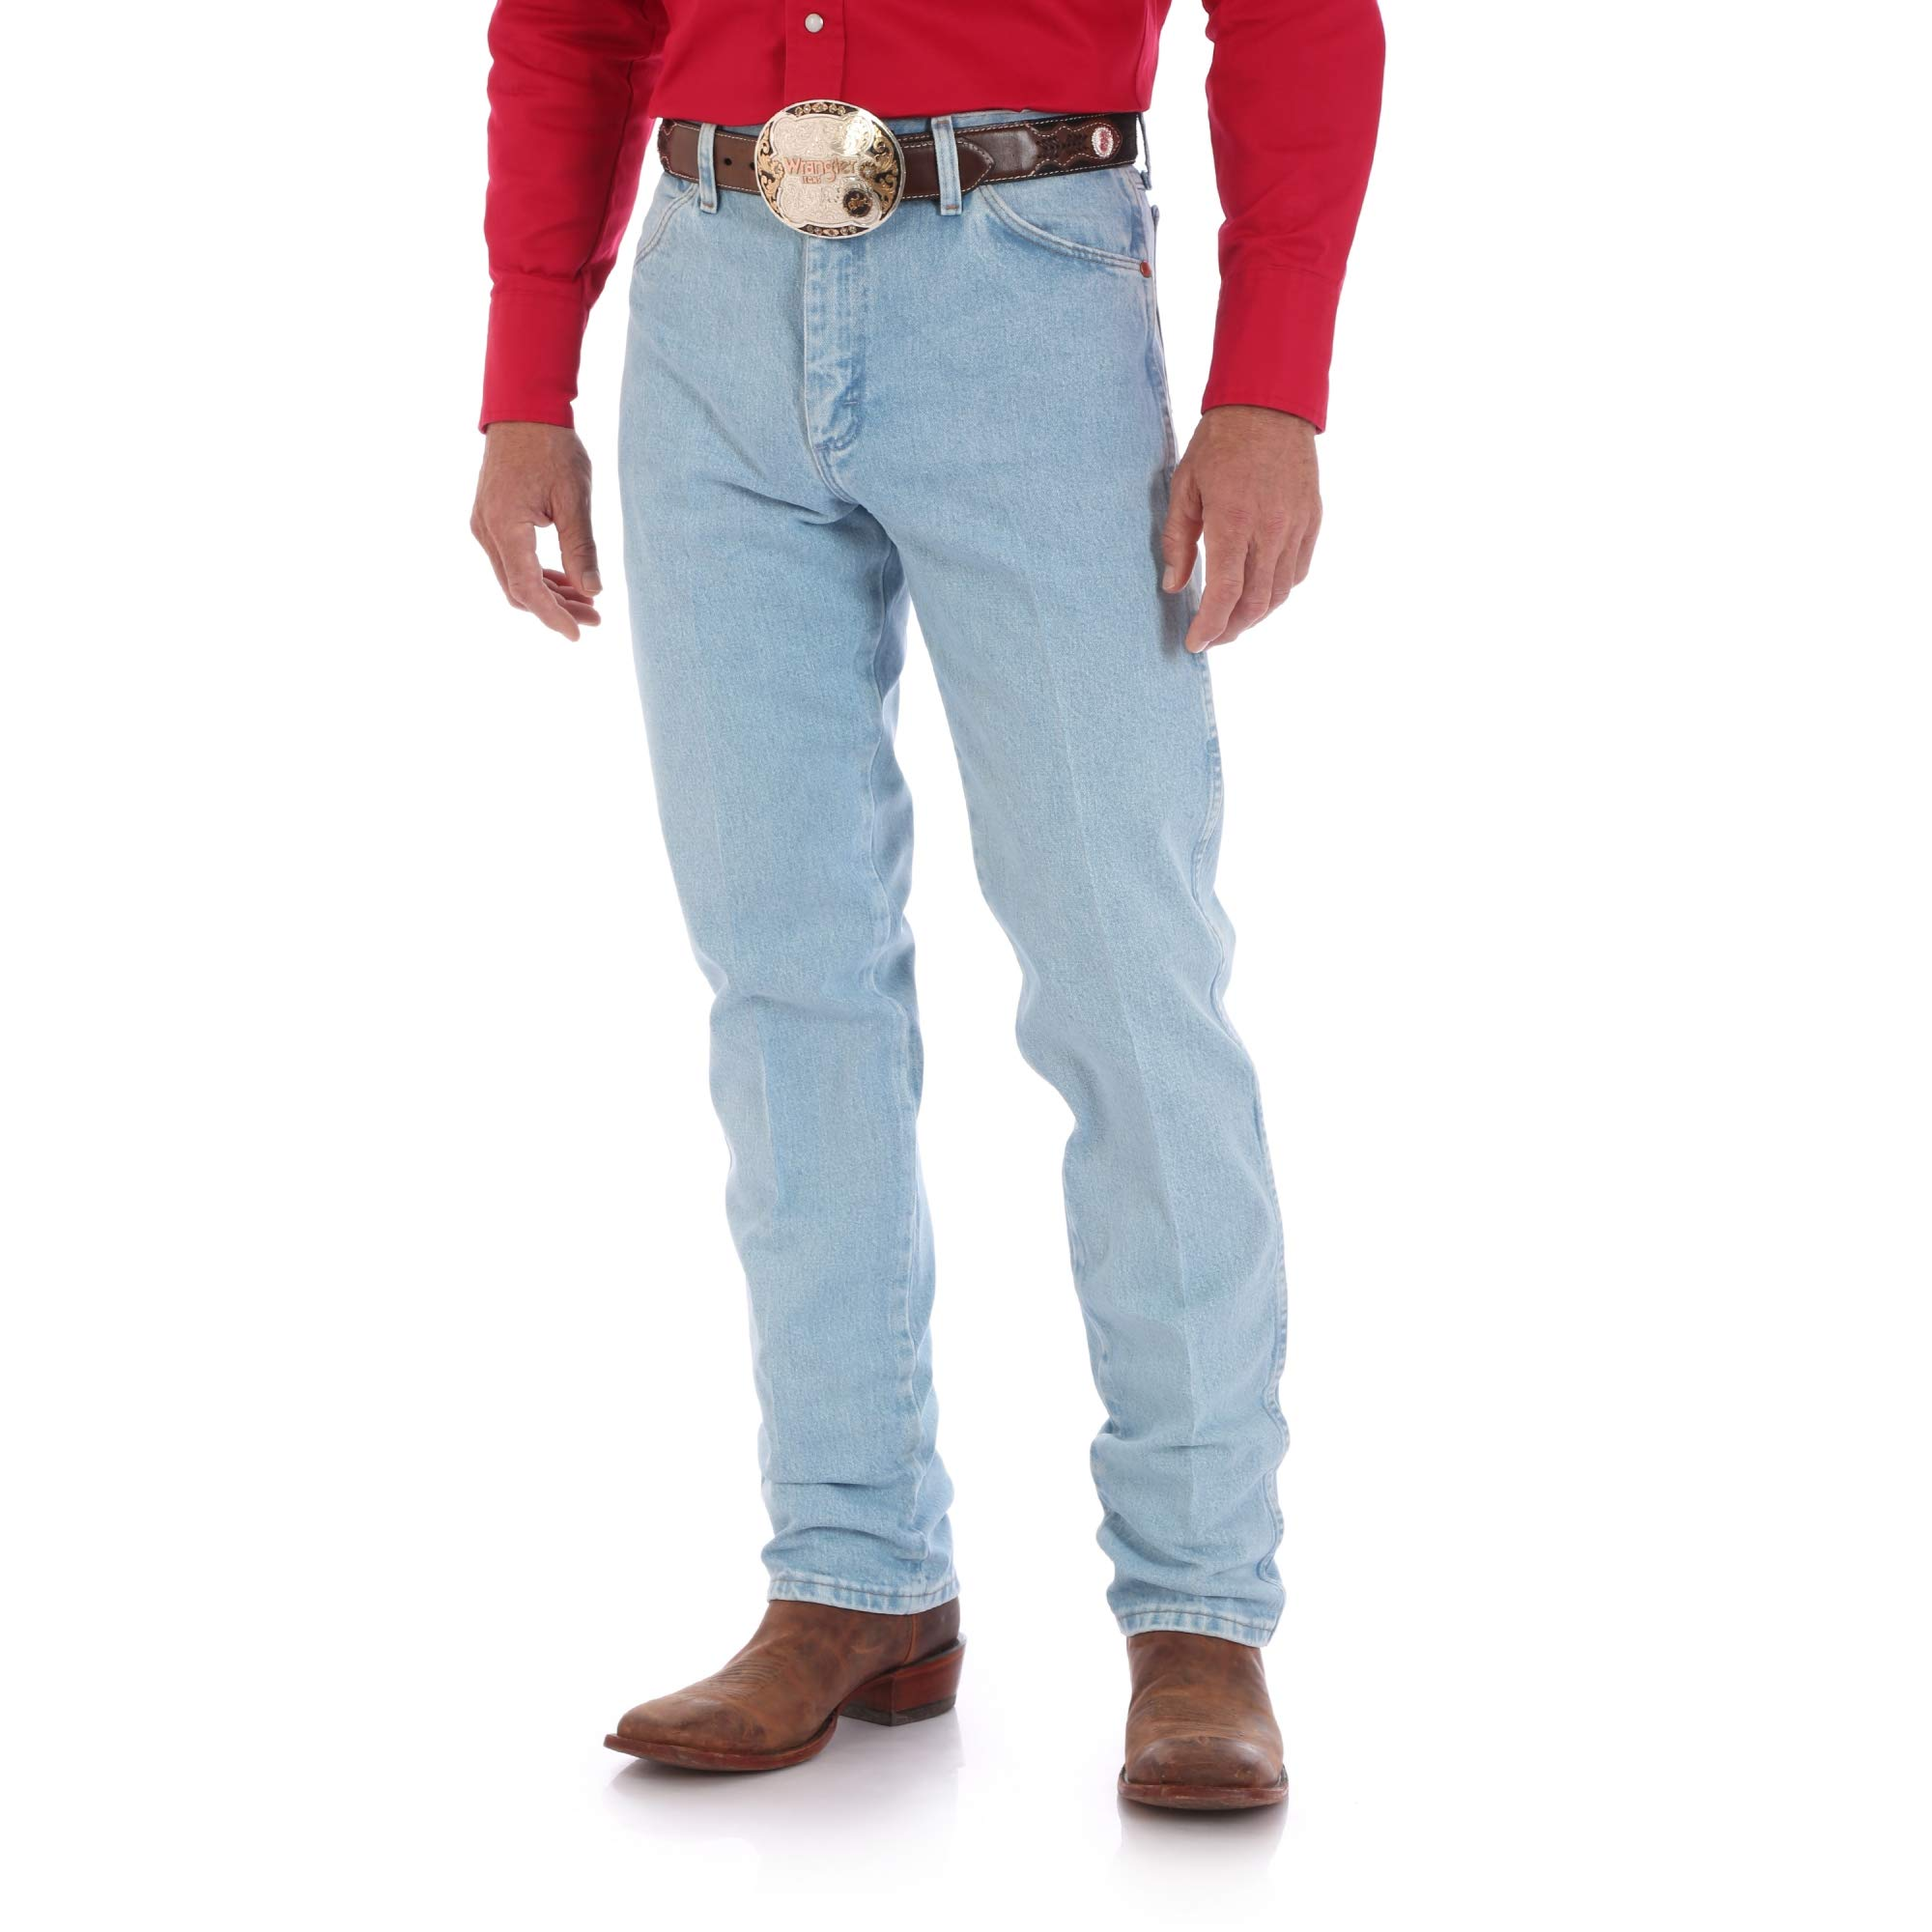 dbca7bb5 Best Rated in Men's Jeans & Helpful Customer Reviews - Amazon.com